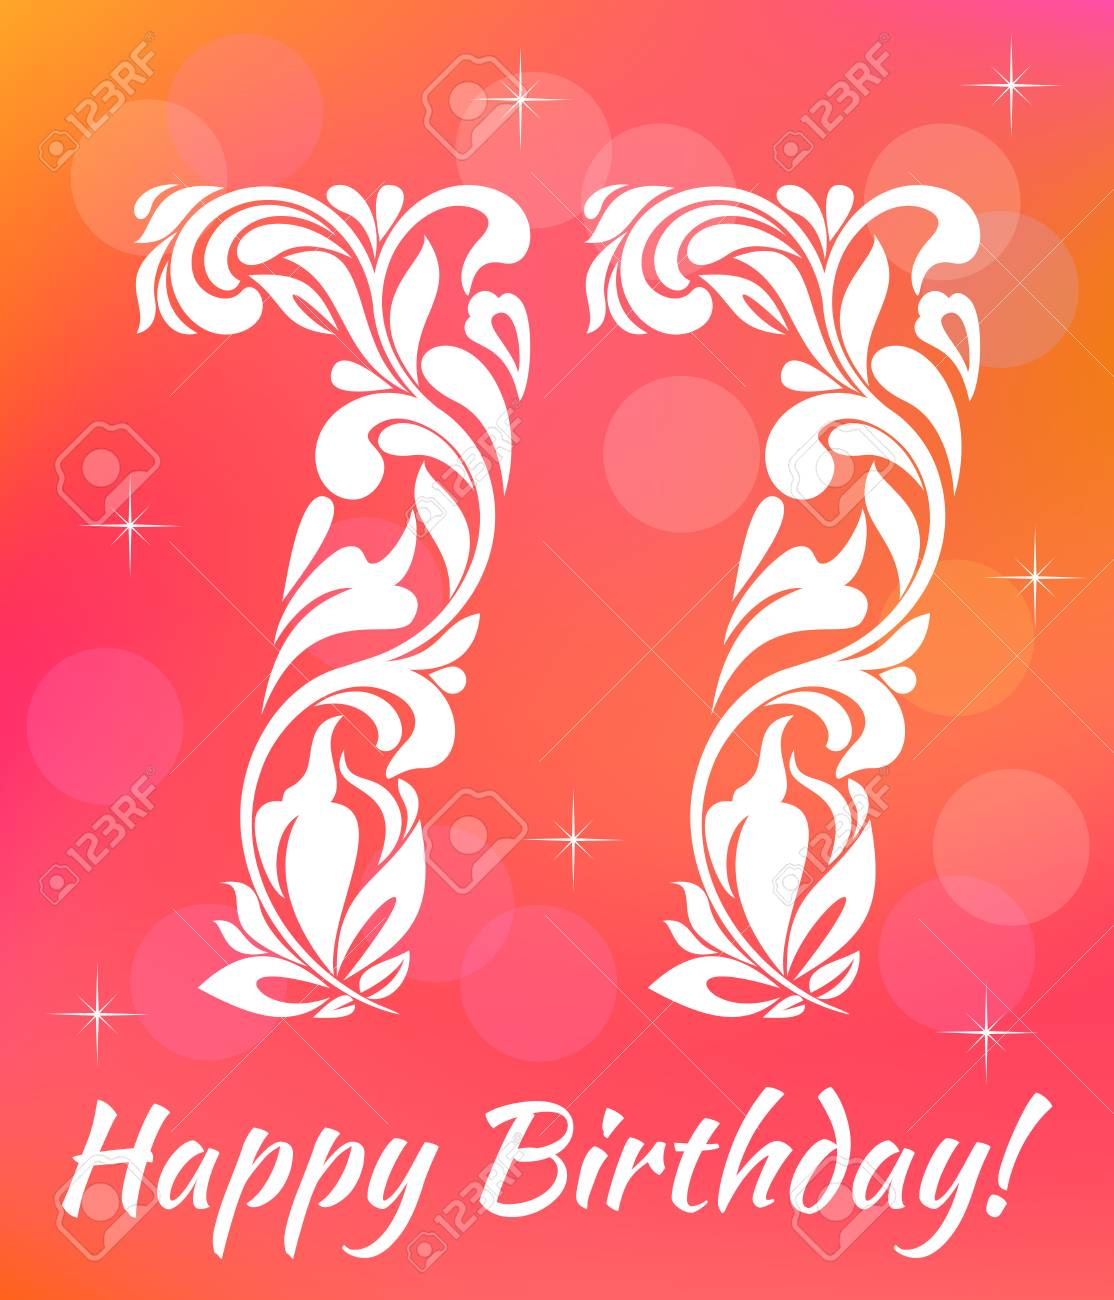 Bright Greeting Card Template Celebrating 77 Years Birthday Stock Vector